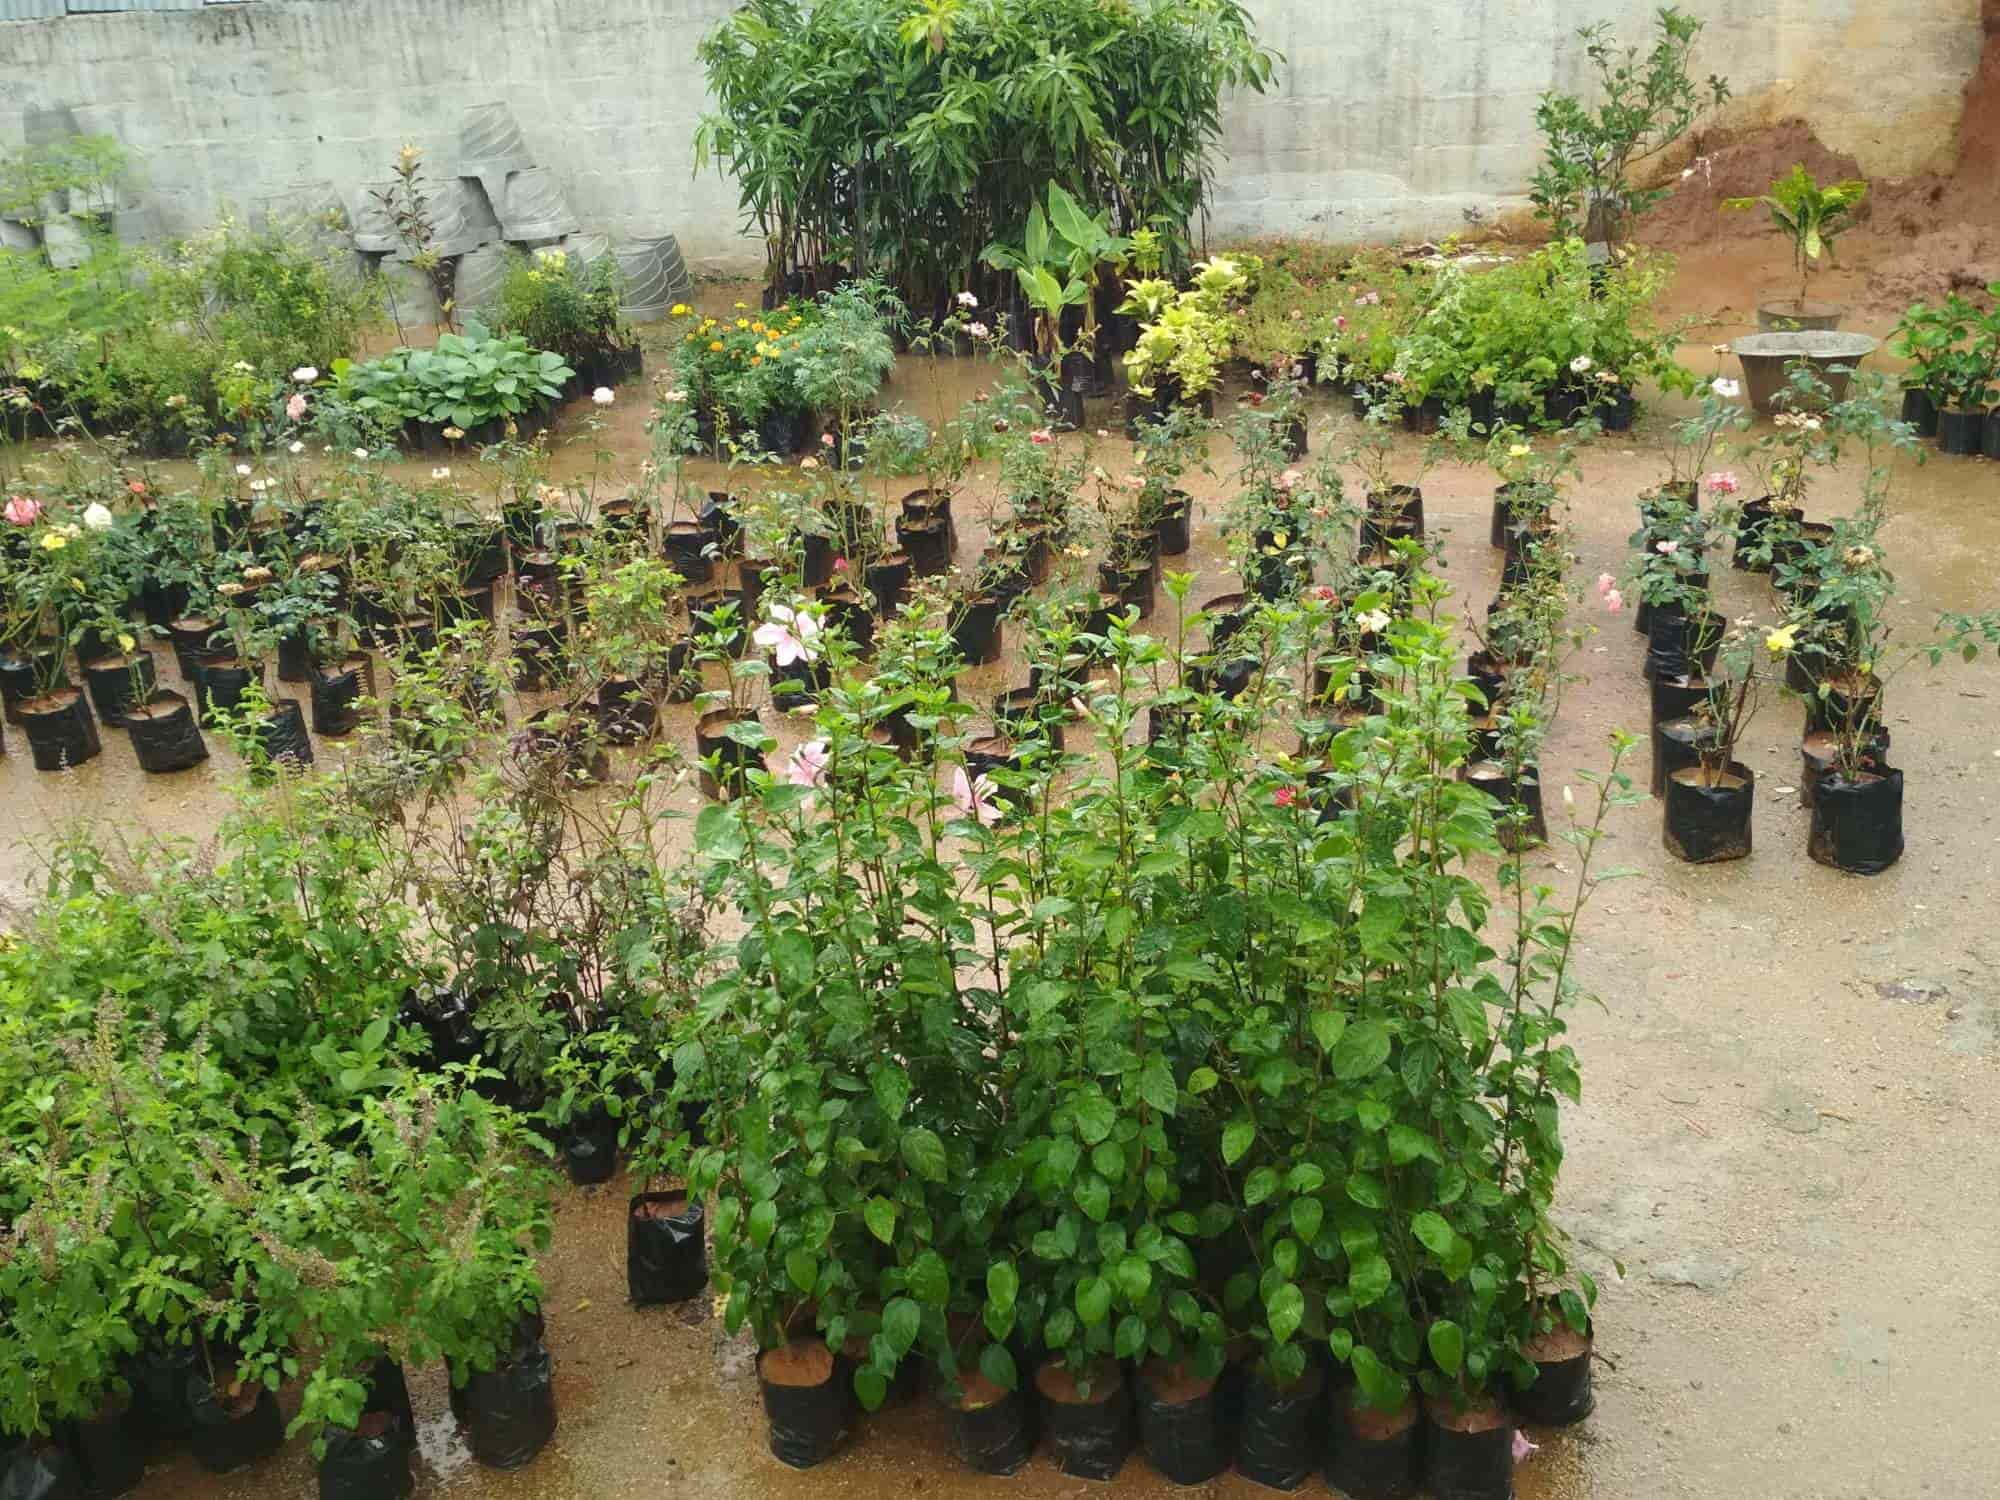 Ever Green Nursery And Gardens Plant Nurseries In Tirupati Justdial